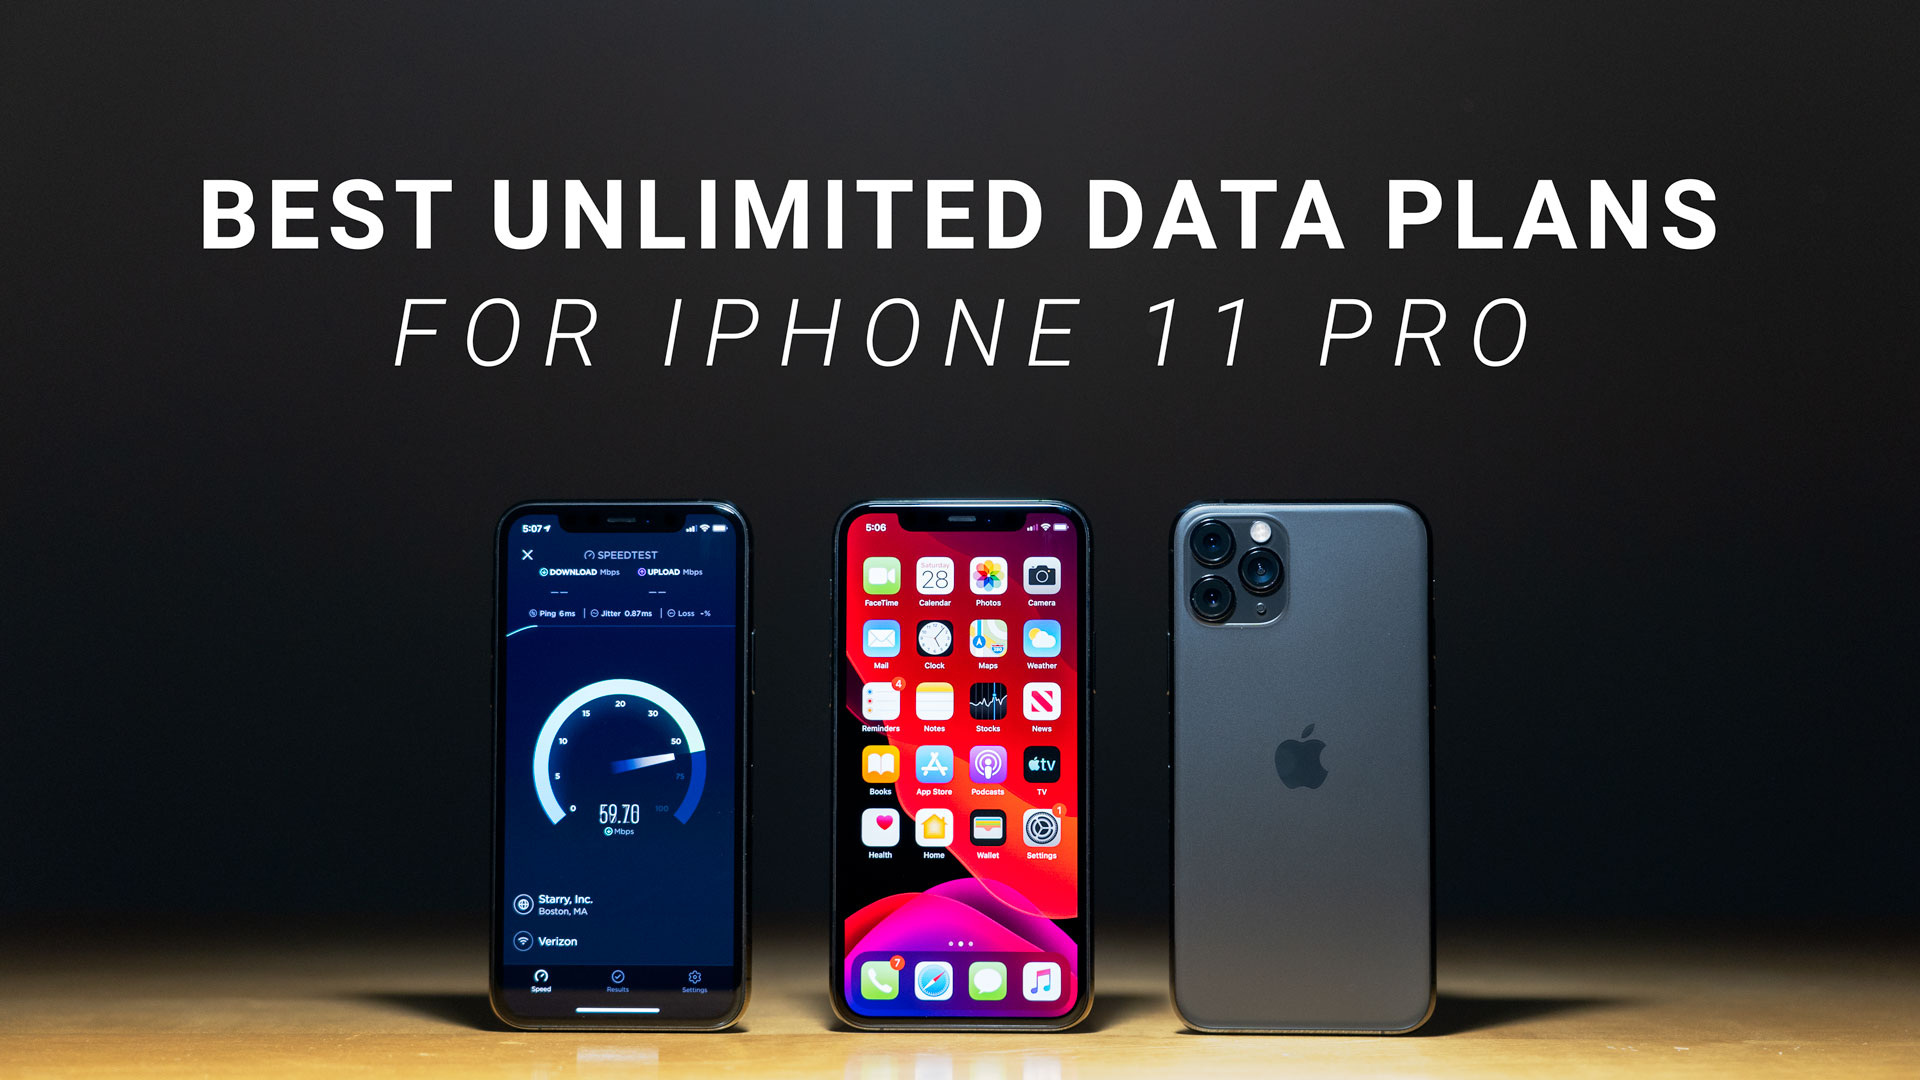 iPhone 11 Pro performing speed test on oak wood desk with dark background and title text above